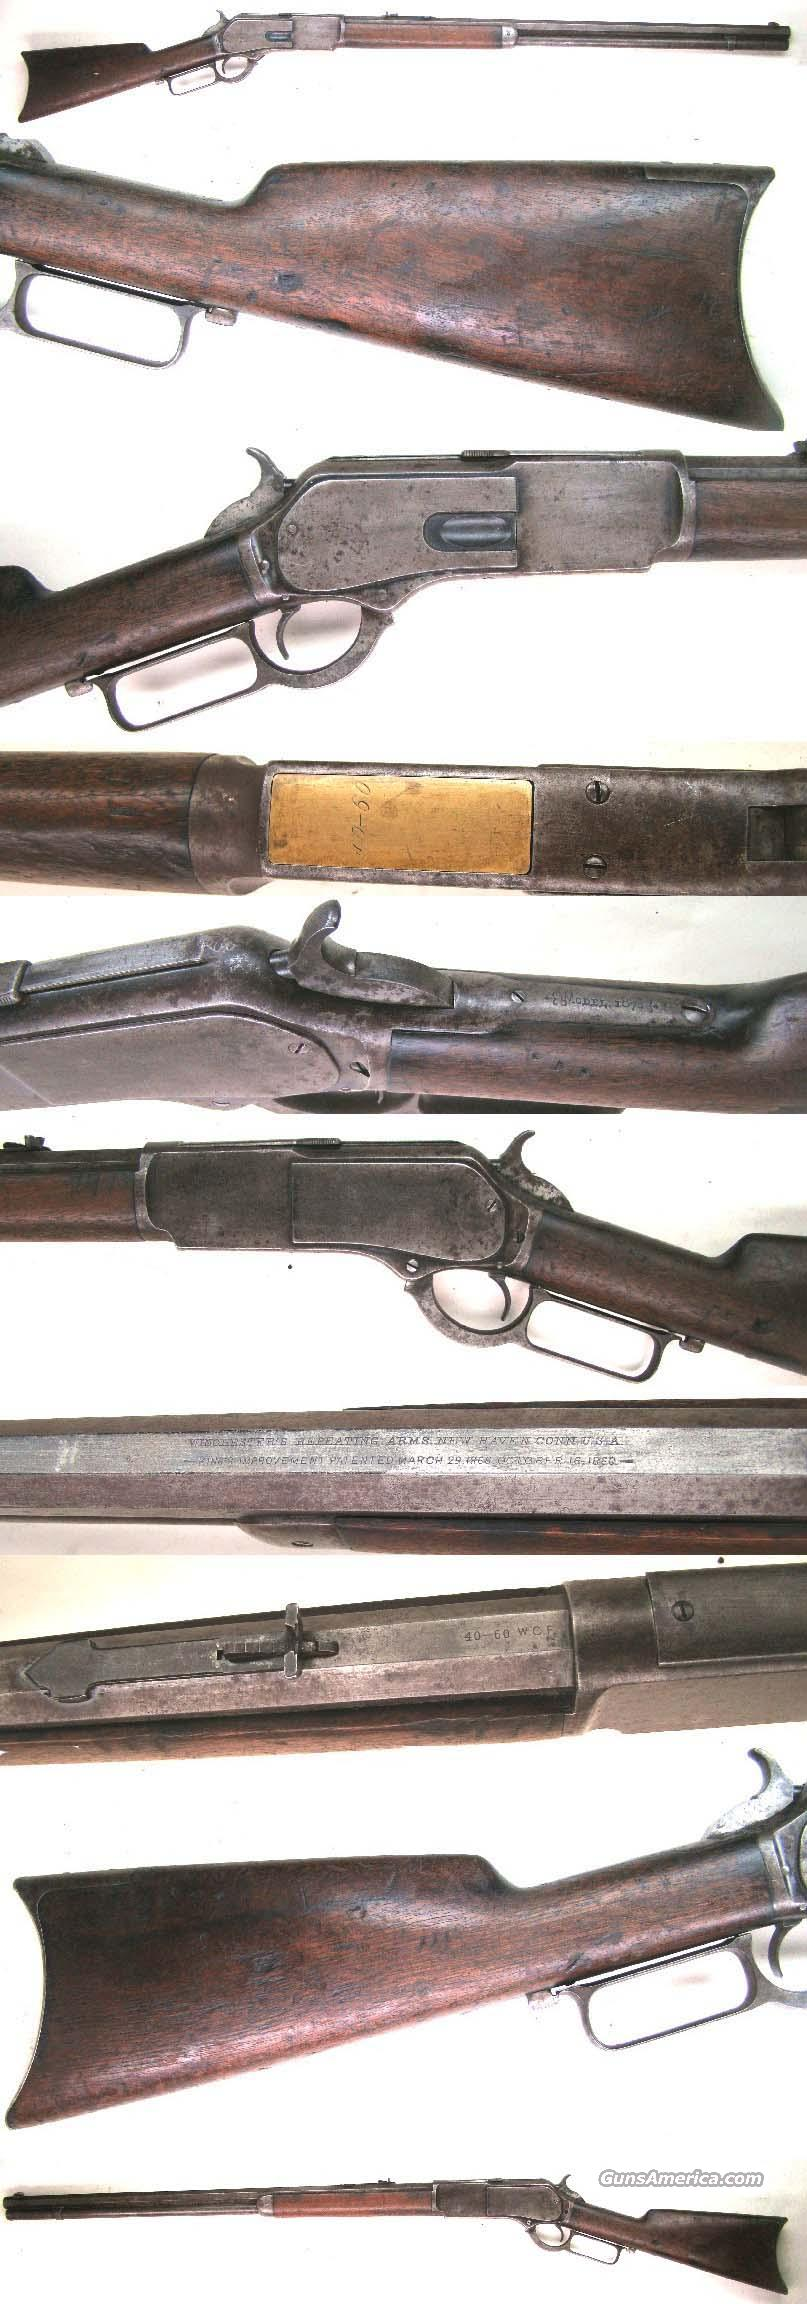 Winchester Model 1876 Rifle 40 cal  Guns > Rifles > Winchester Rifles - Pre-1899 Lever